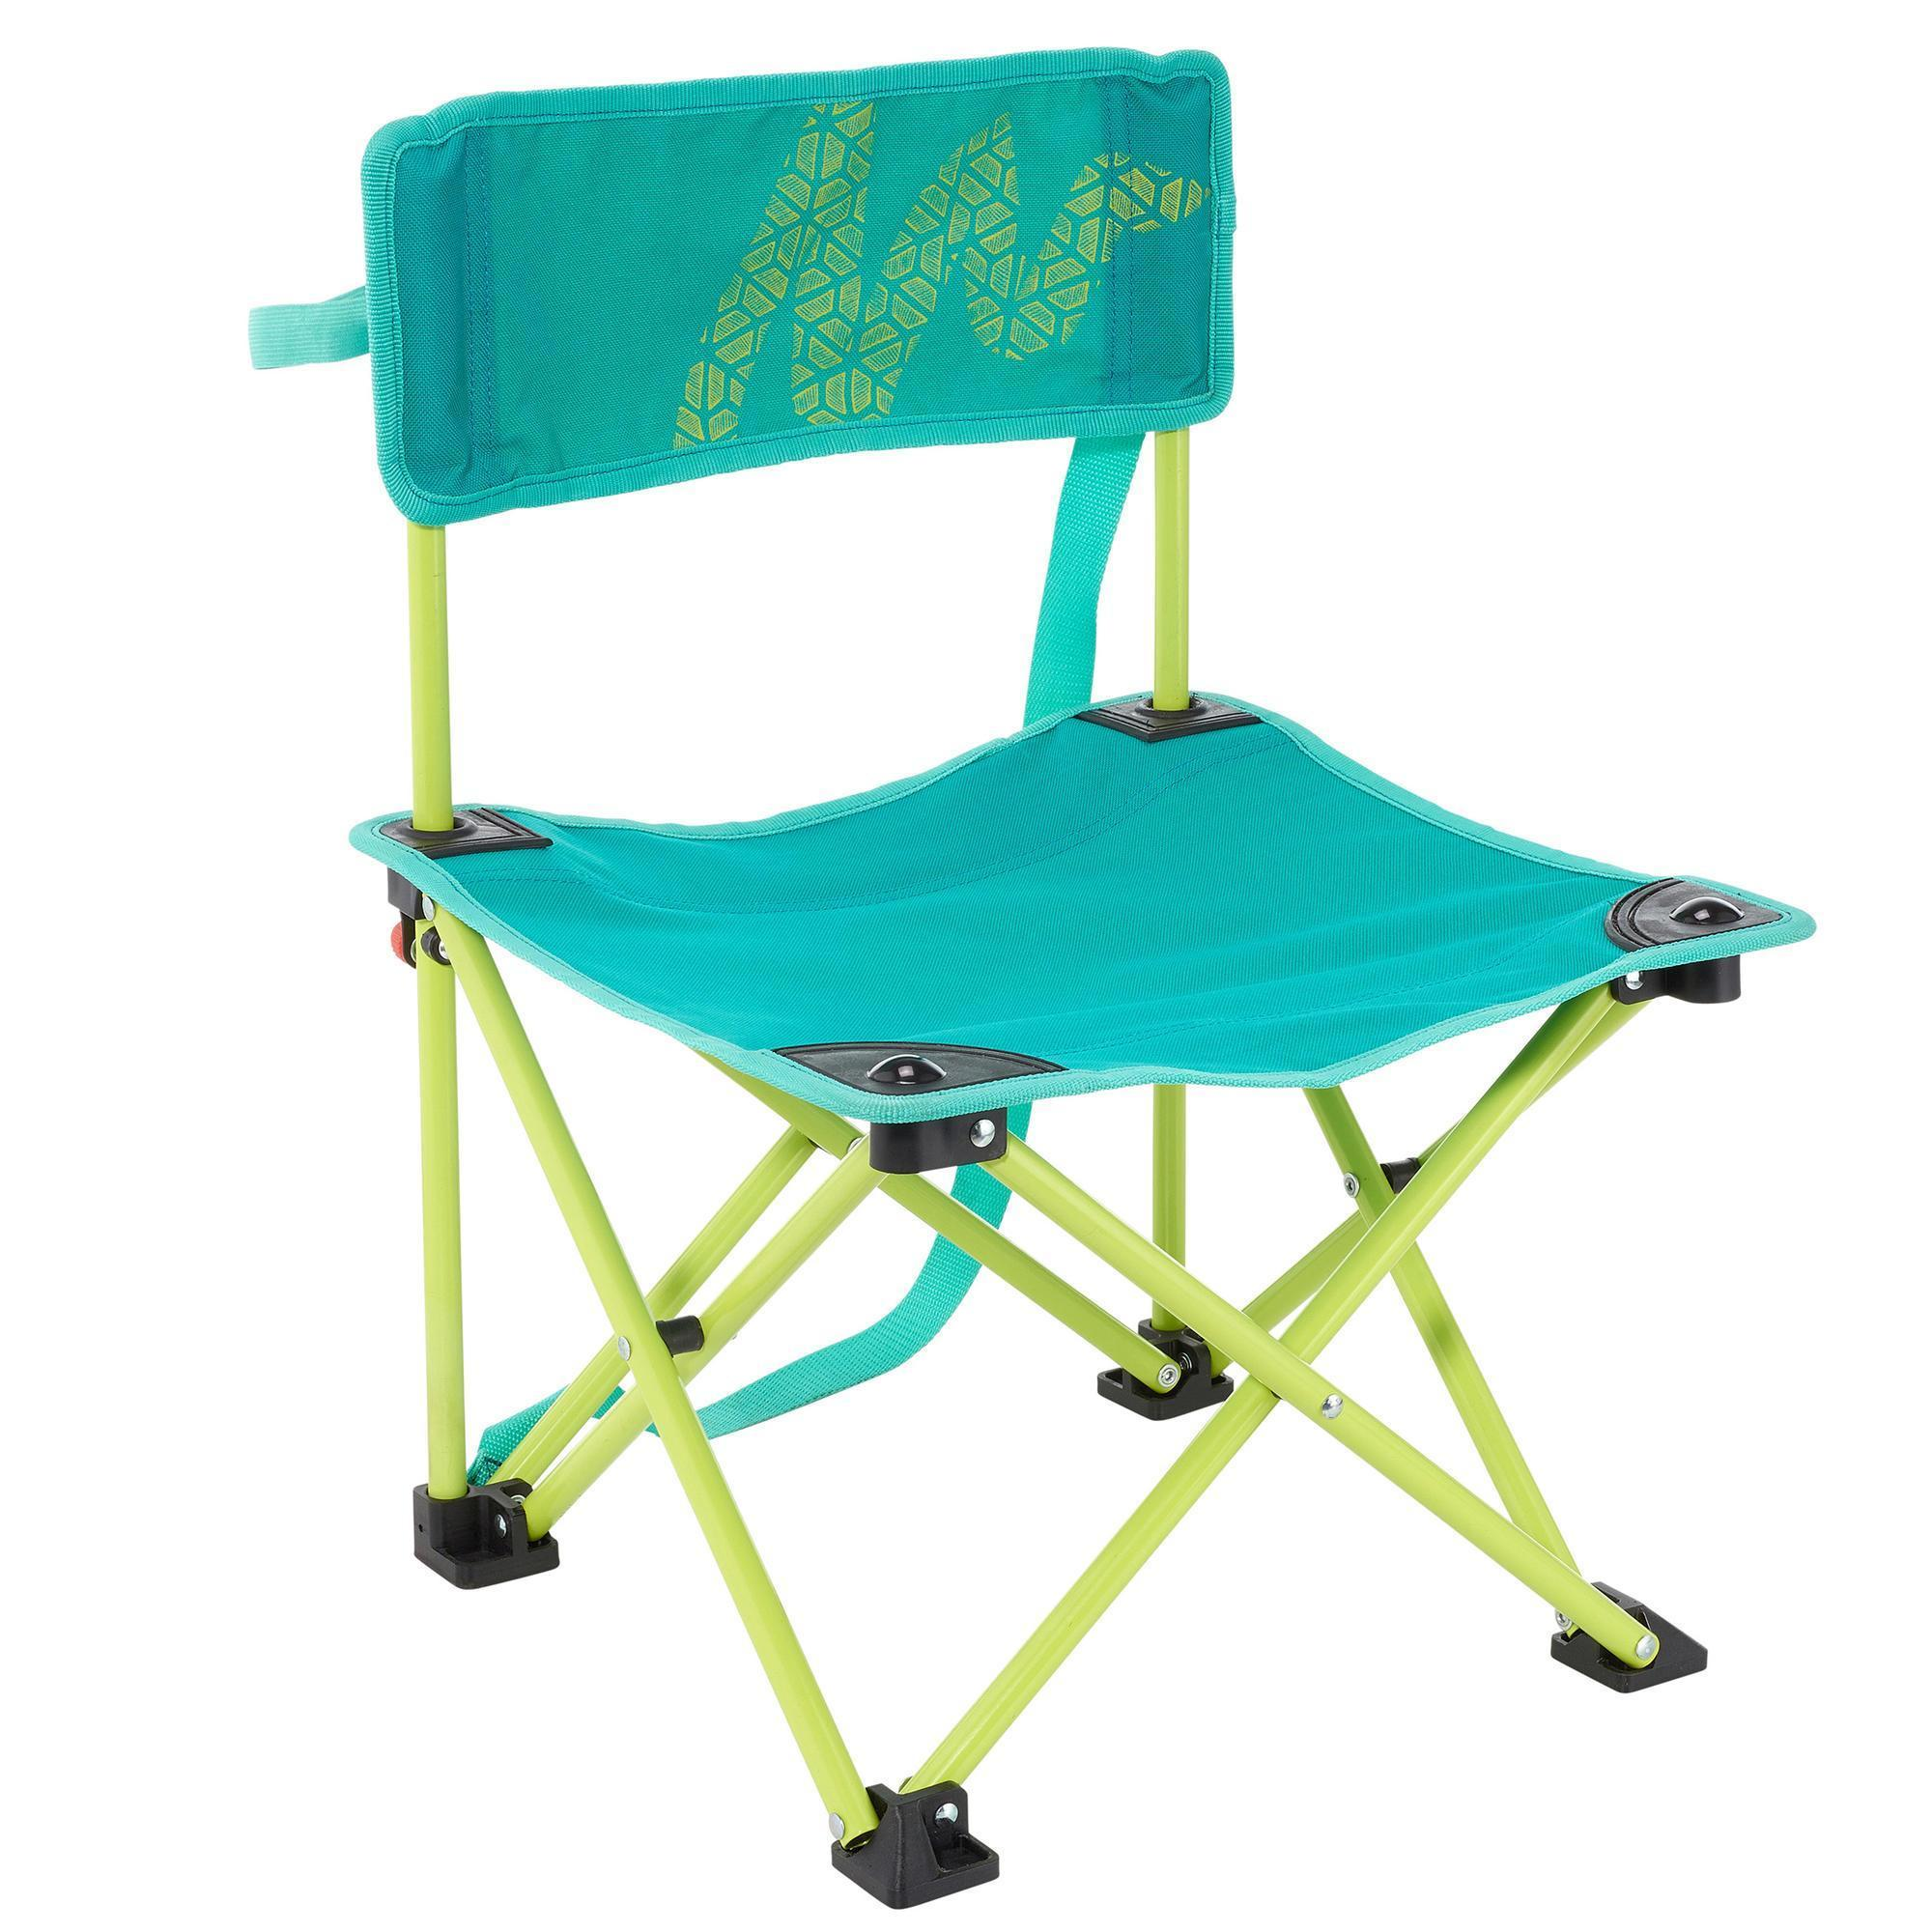 Camping chair for children